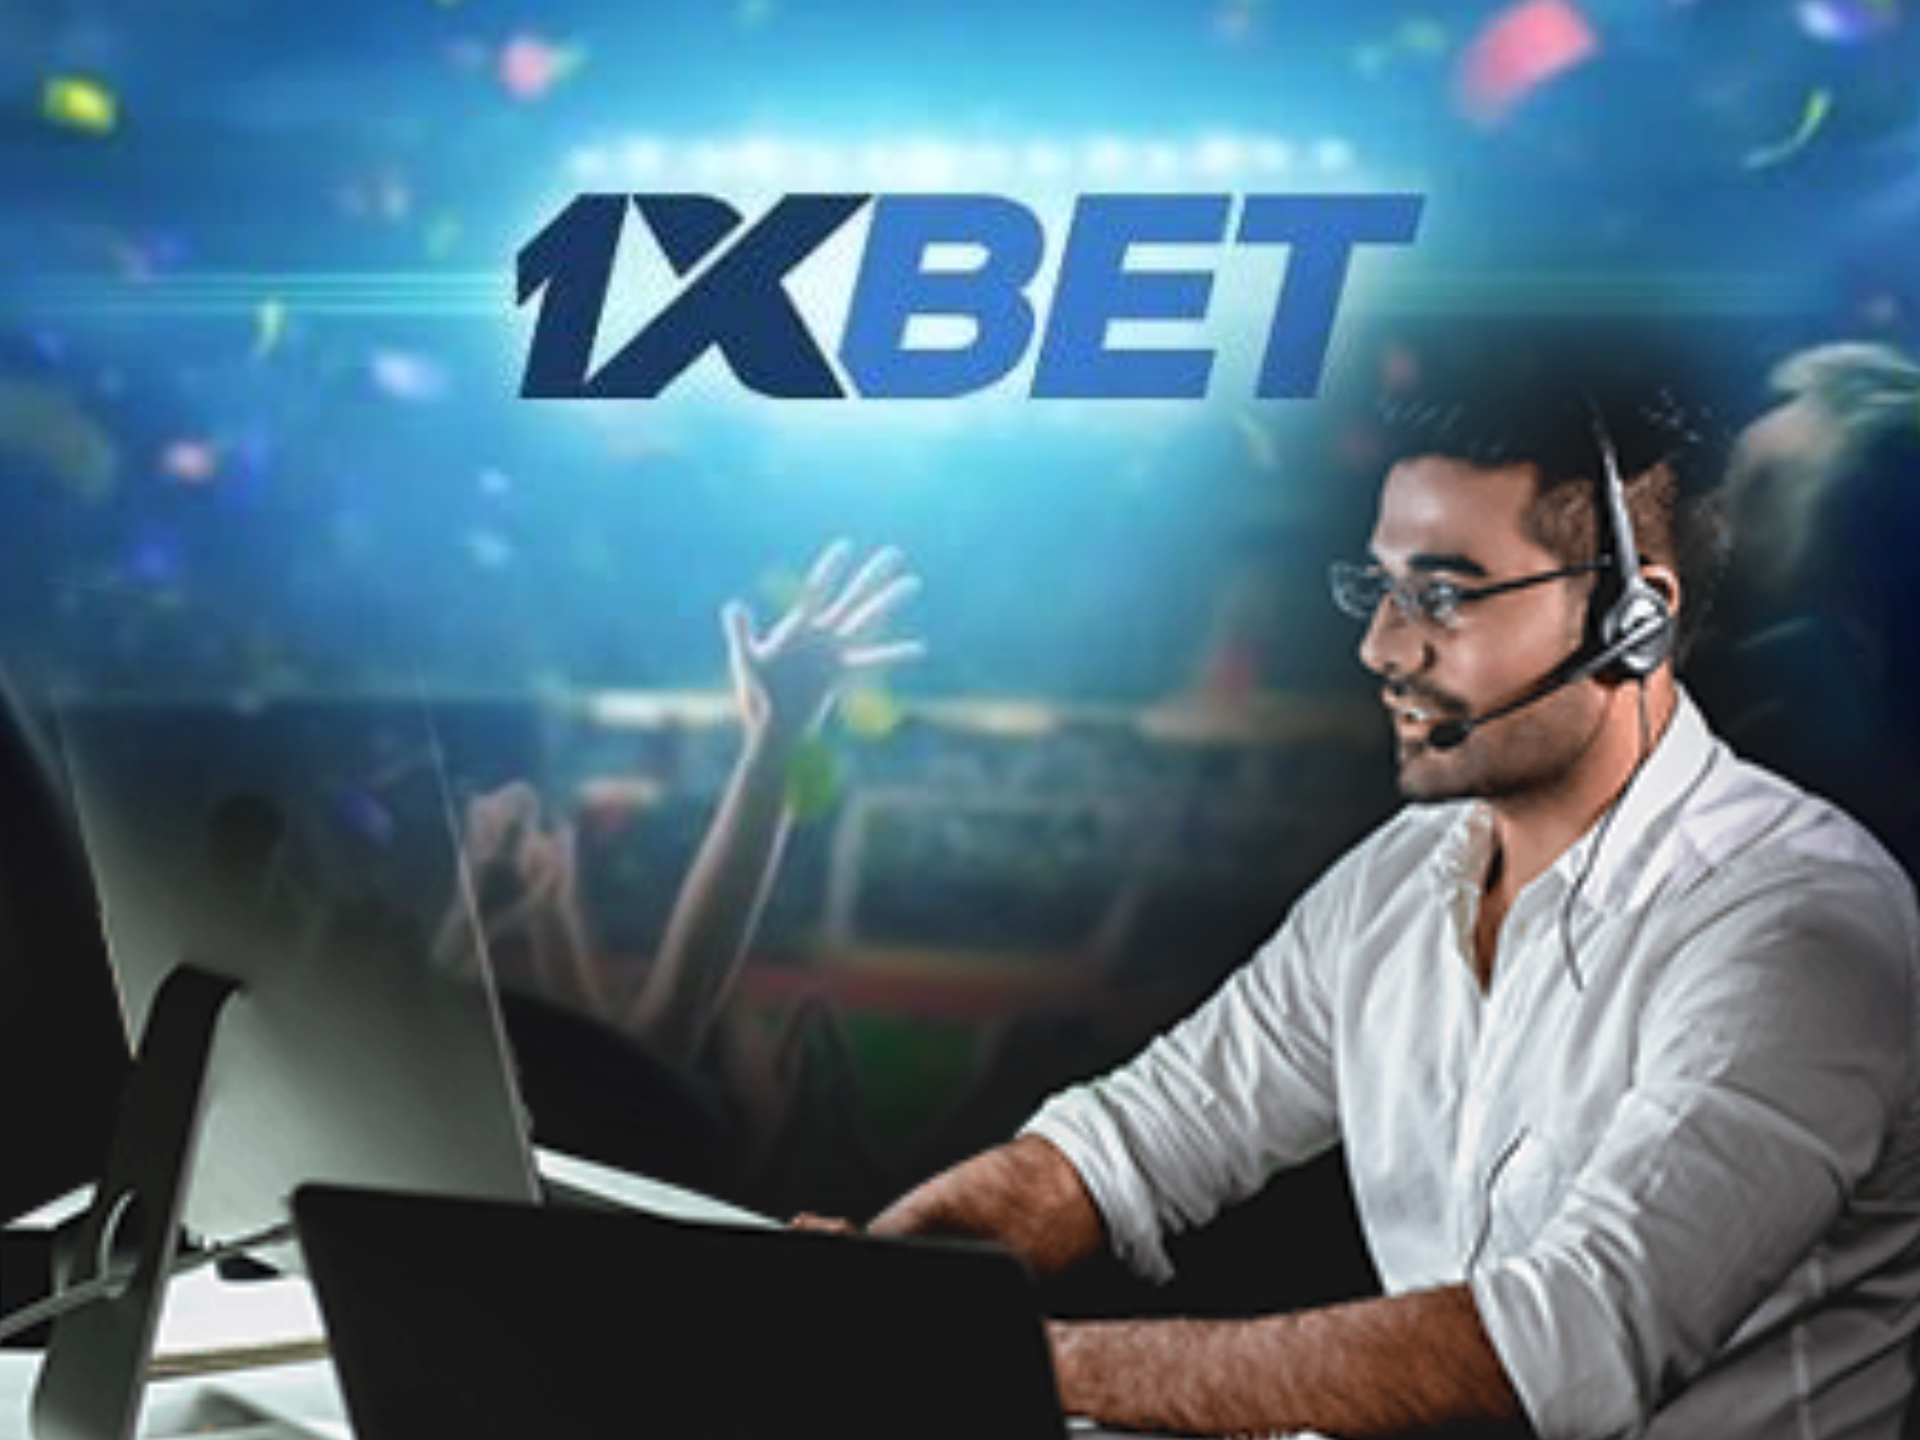 1xbet Customer support will help you to solve any bettin-related problems.